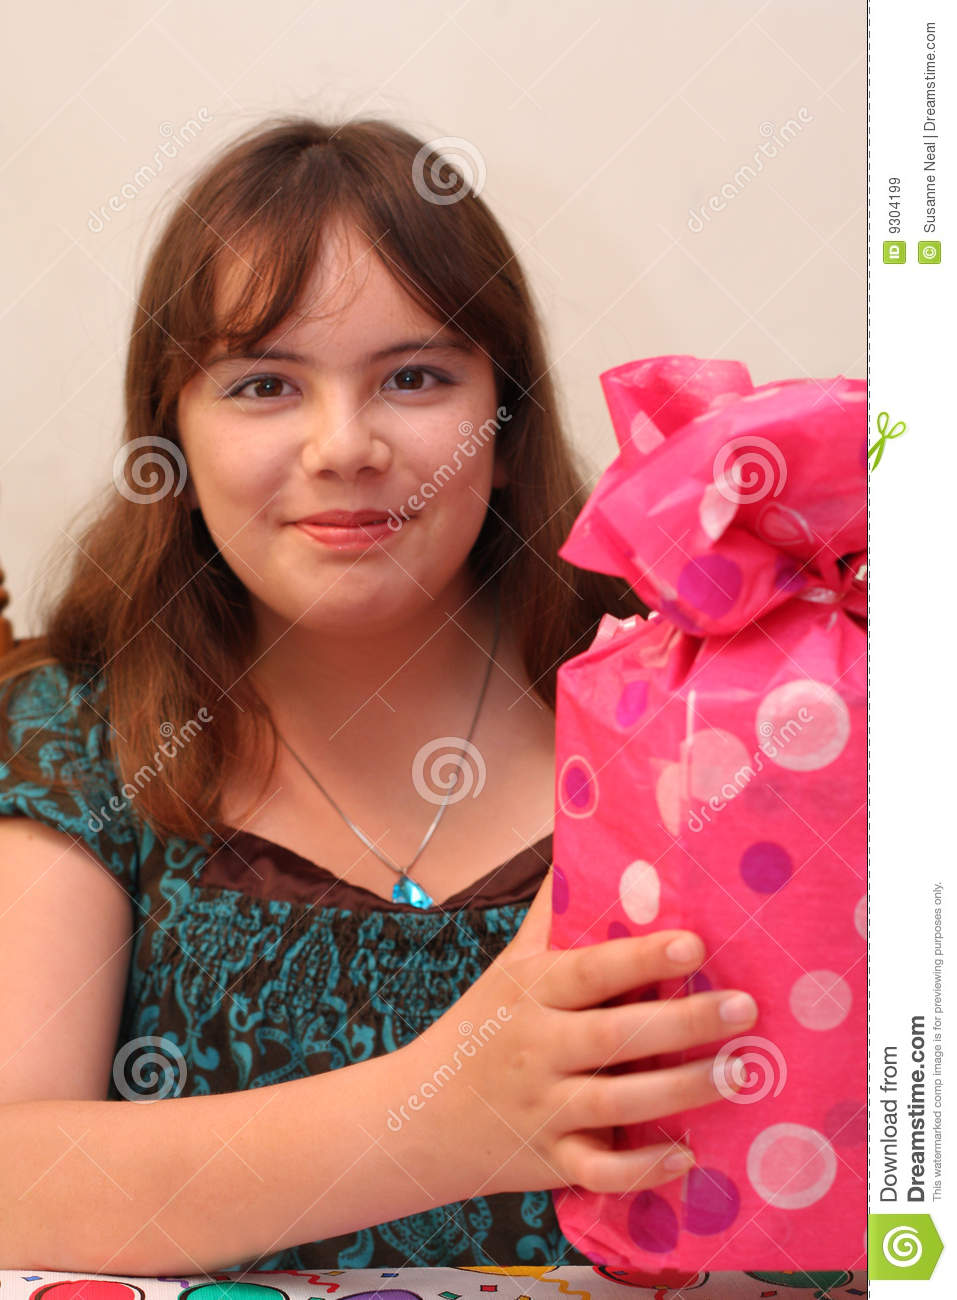 A Birthday For Pretty Smiling 13 Year Old Teen Who Is Holding Gift Or Present Model Multicultural Asian And Caucasian With Brown Hair Eyes